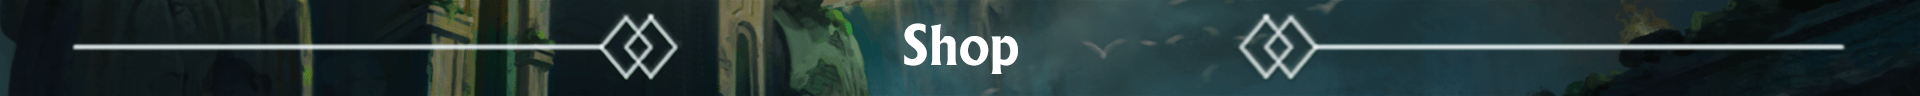 subheading image for shop changes